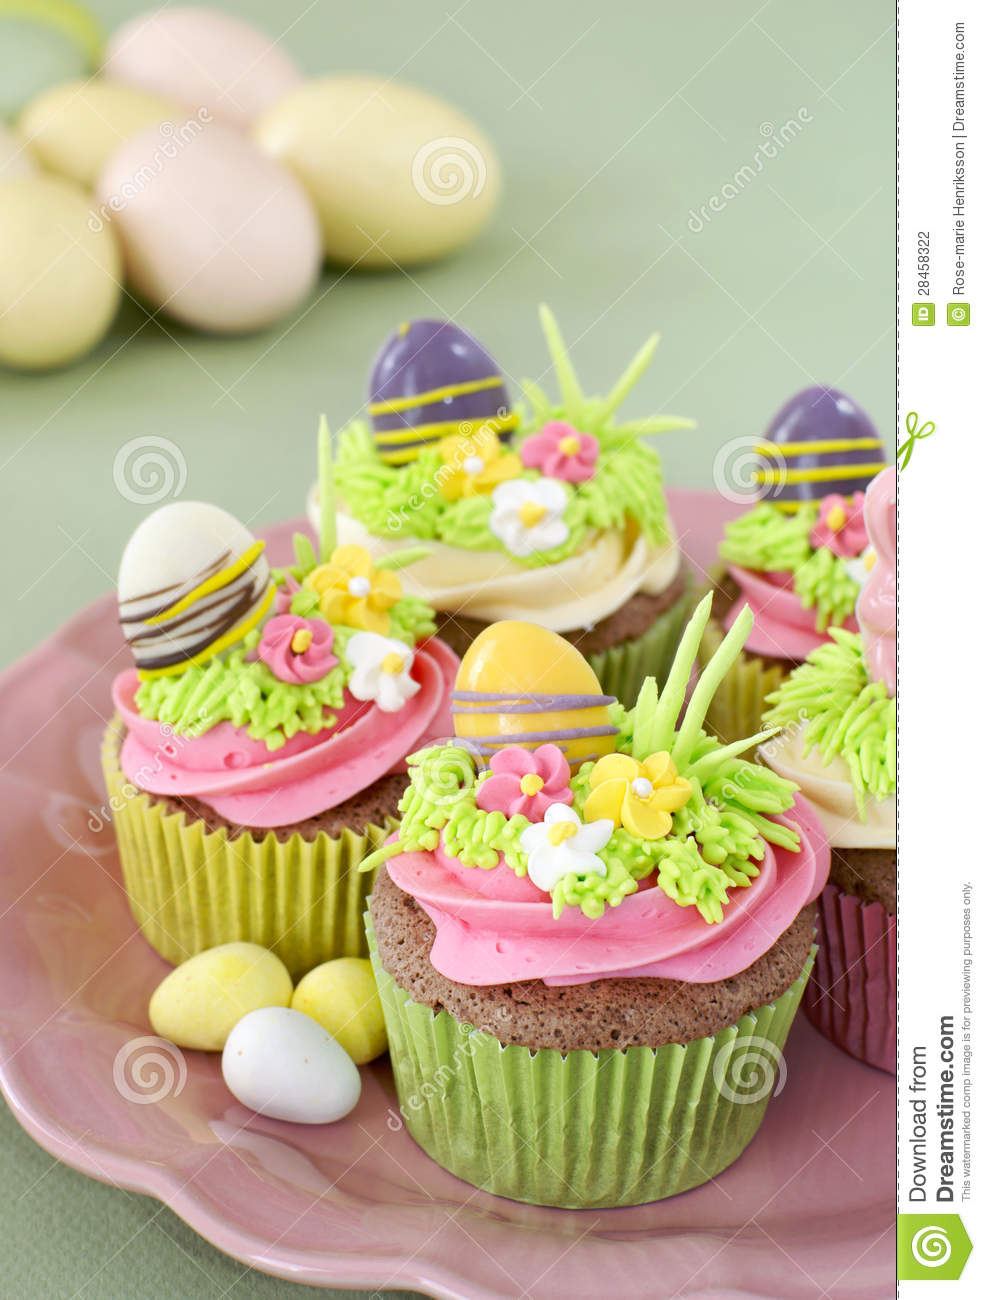 Chocolate cupcakes with vanilla frosting decorated for Easter.